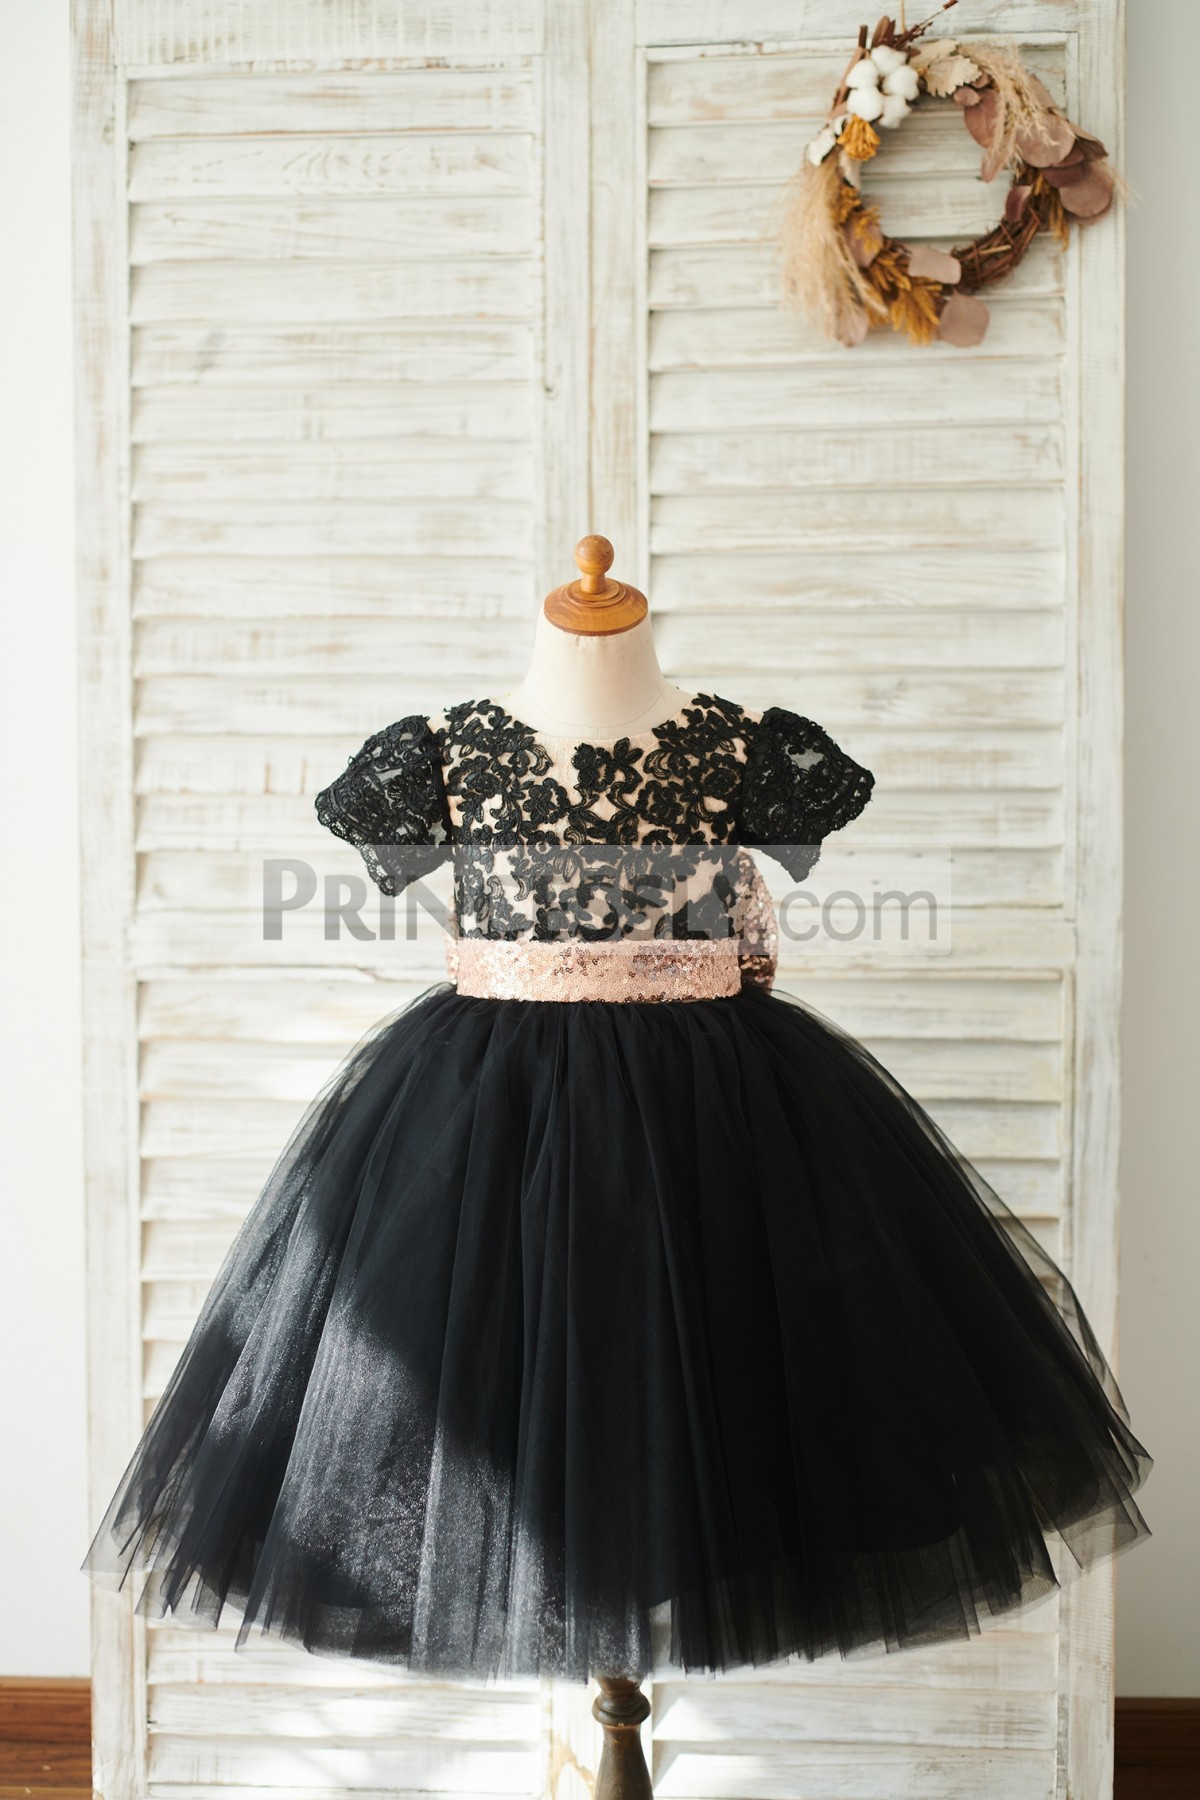 Scoop Neck Short Sleeves Ball Gown Flower Girl Dress